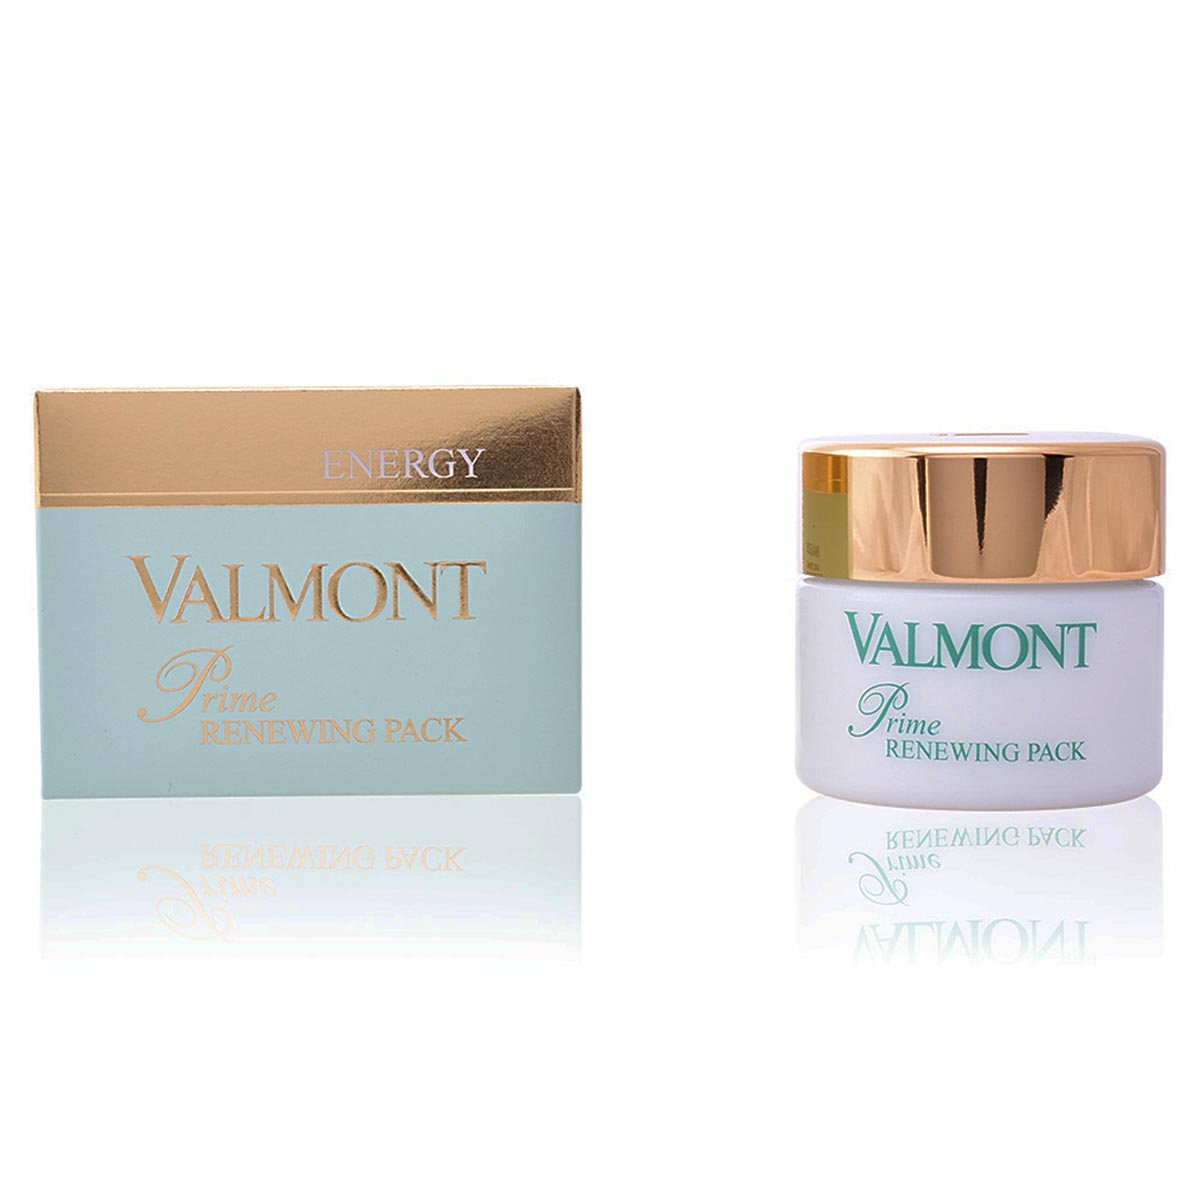 Valmont energy prime renewing pack 50ml